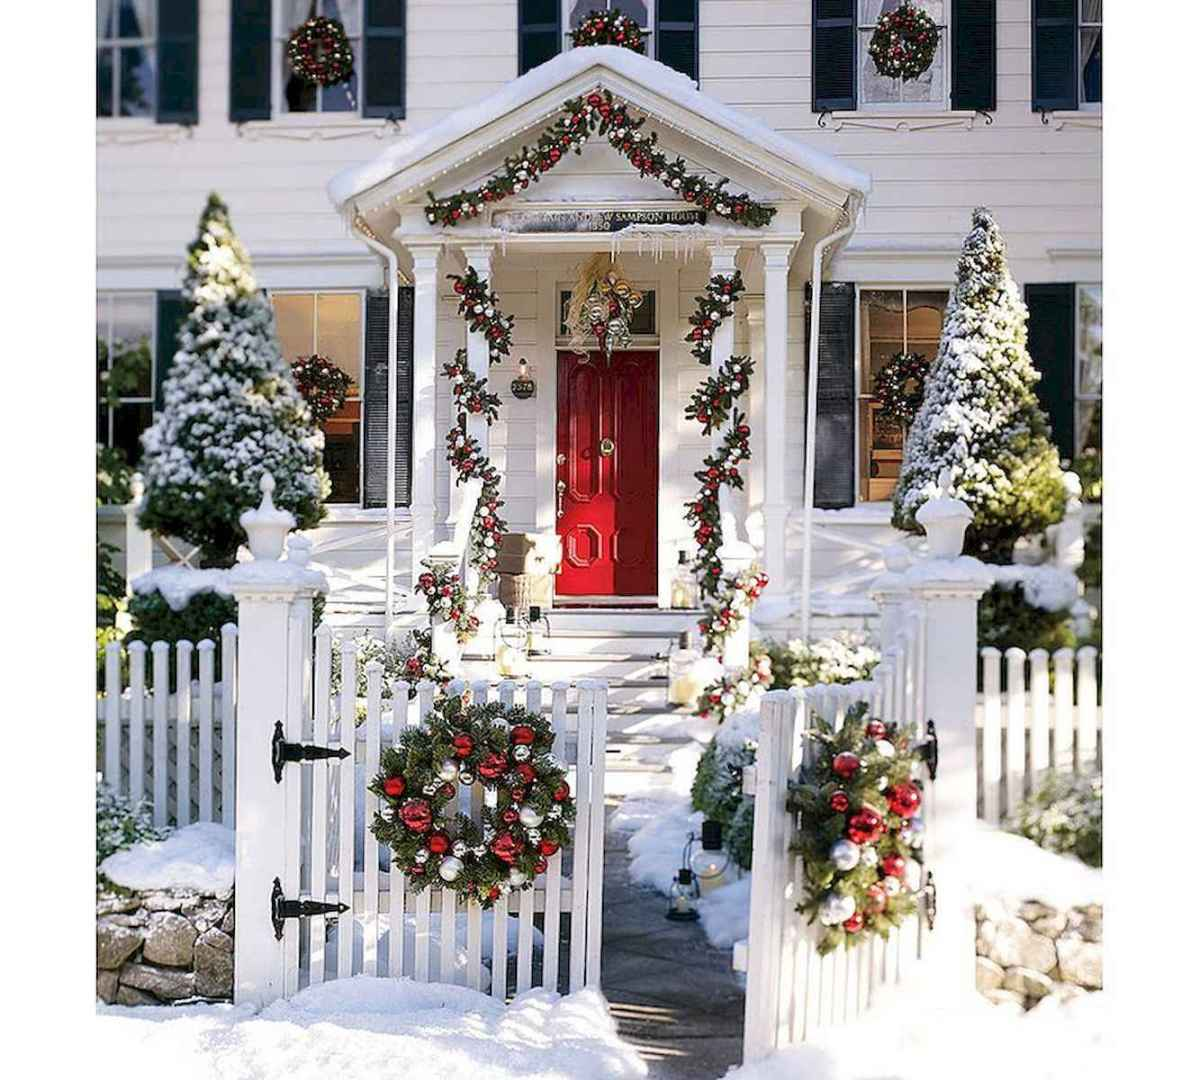 50 Awesome Christmas Front Porch Decor Ideas And Design (41)